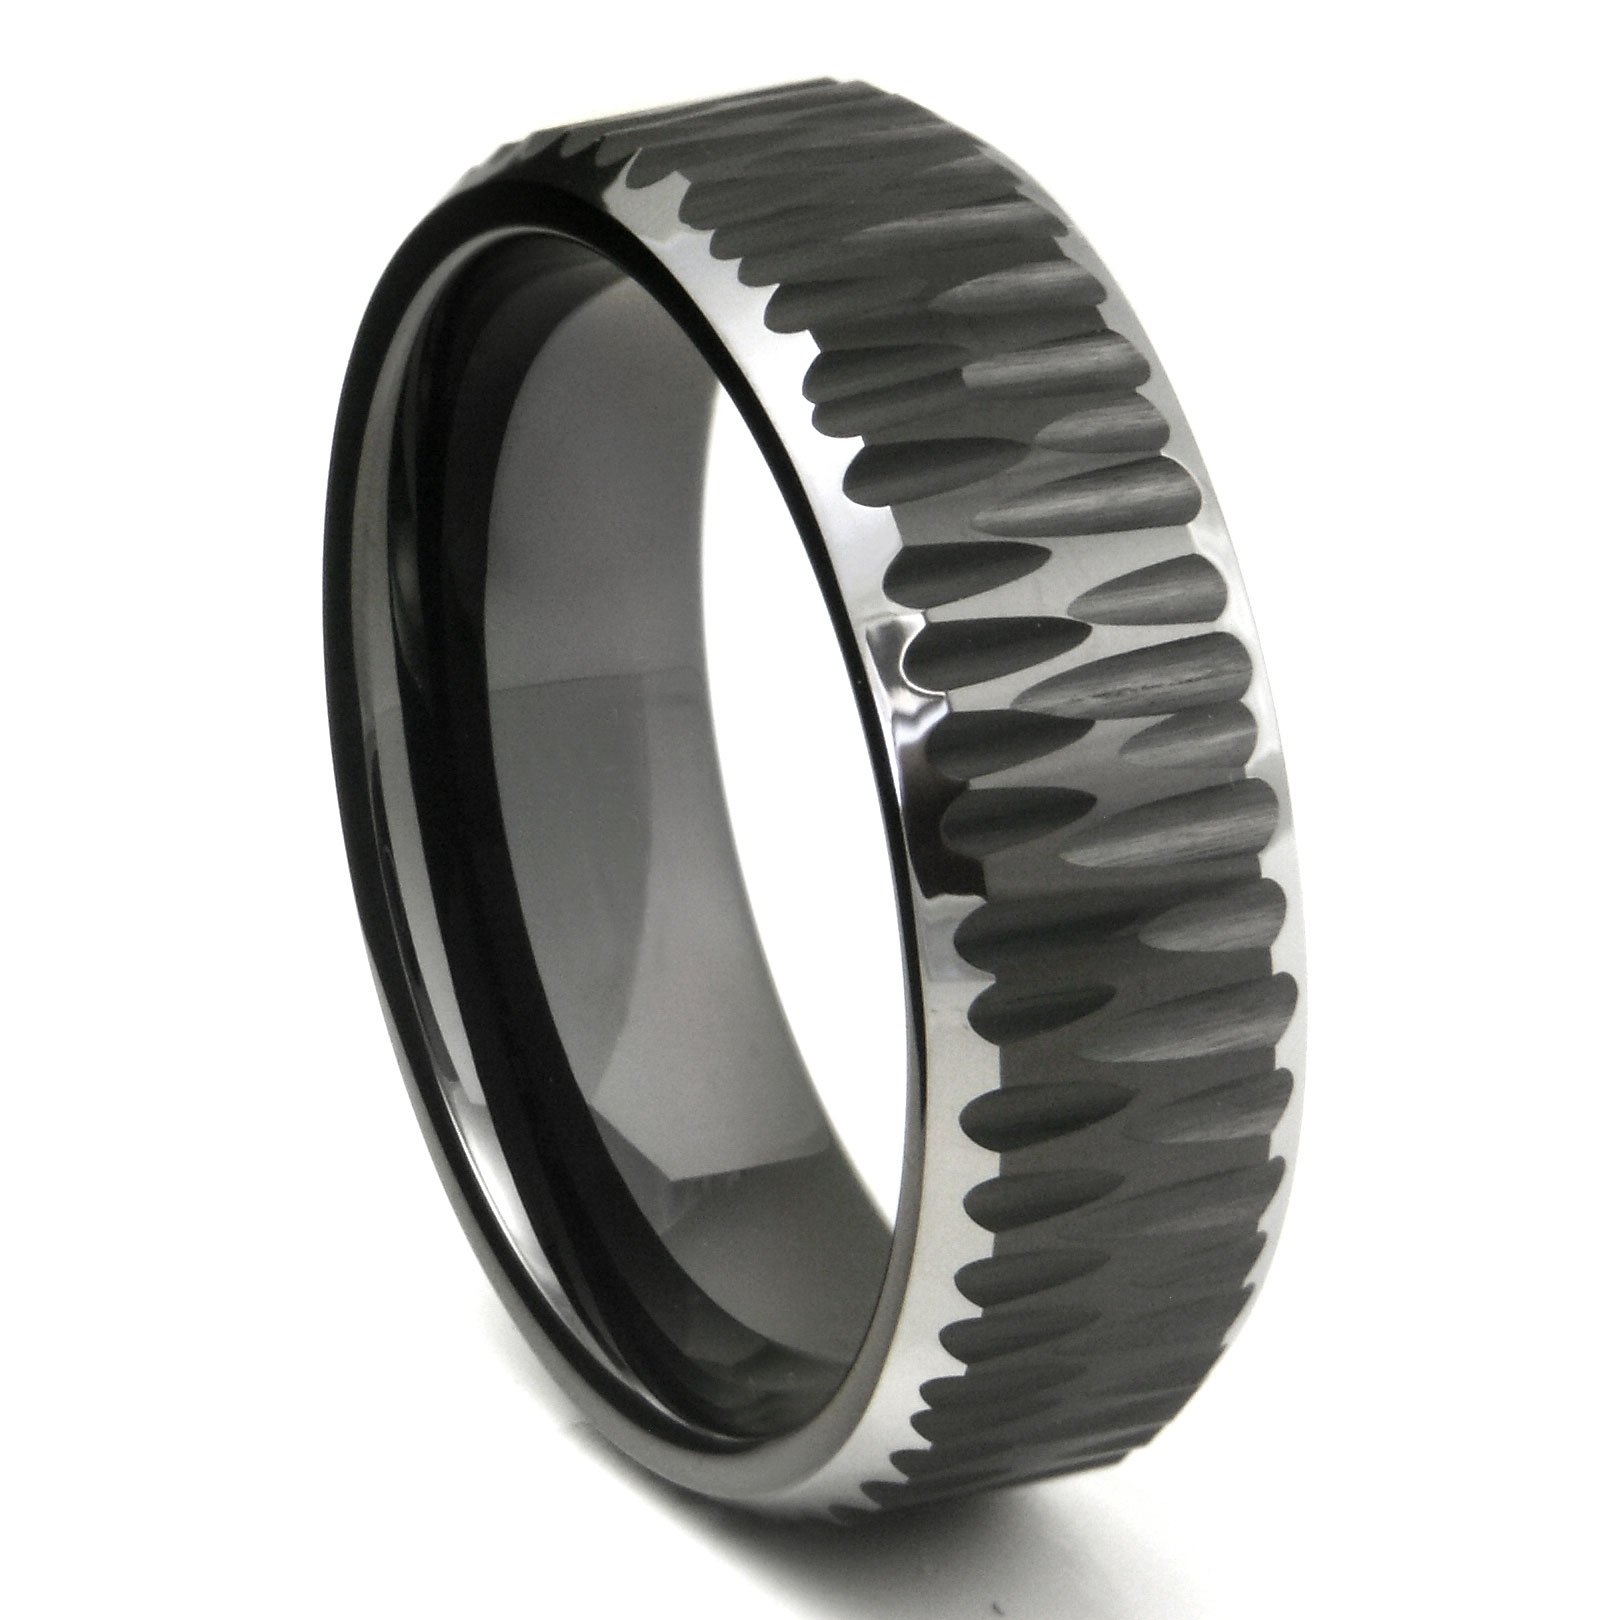 Black Tungsten Carbide Hammer Finish Beveled Wedding Band Ring With Regard To Most Popular Tungsten Wedding Bands (View 2 of 15)